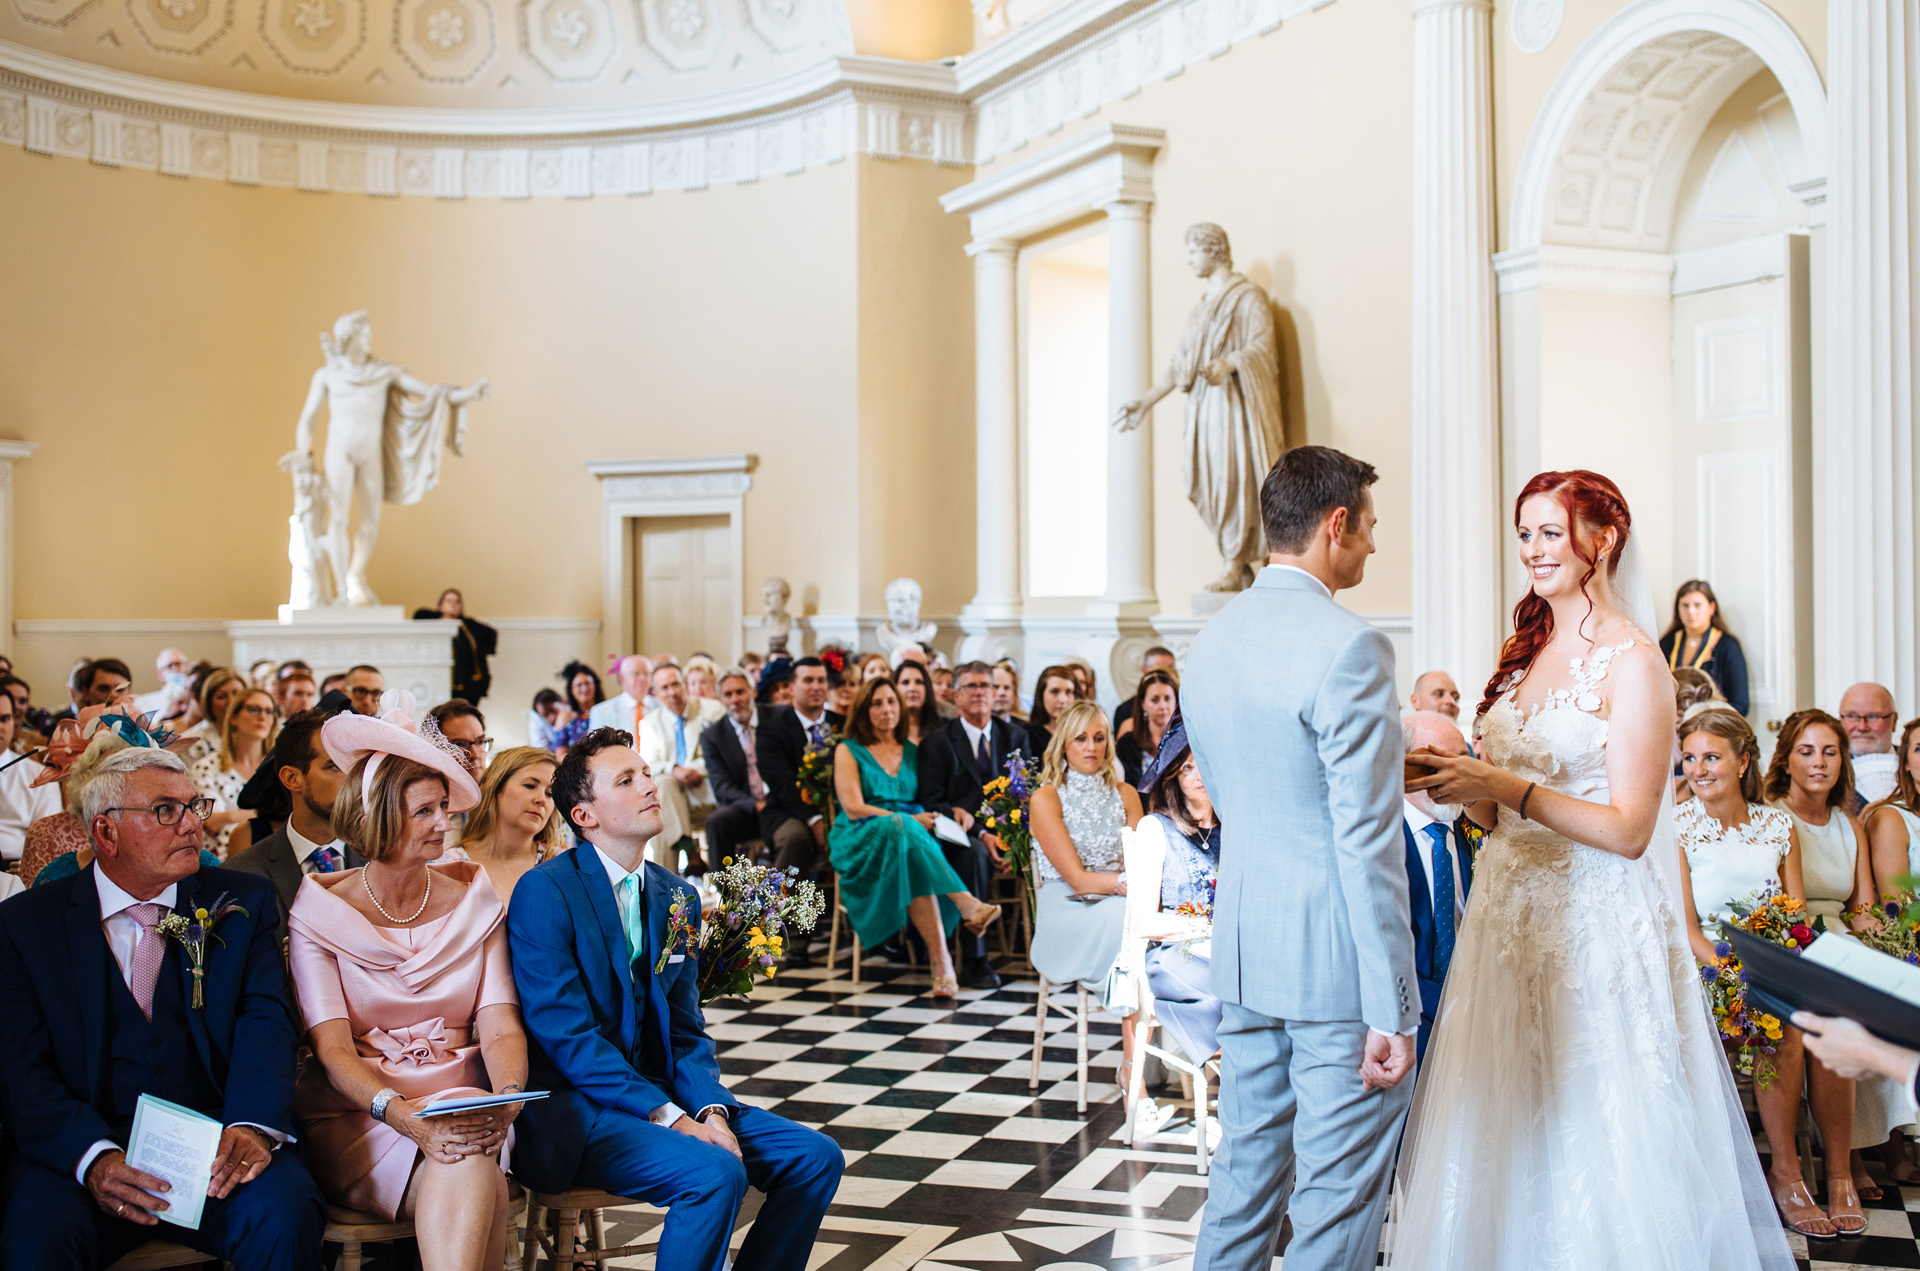 bride and groom saying vows in wedding ceremony in the great hall at syon park